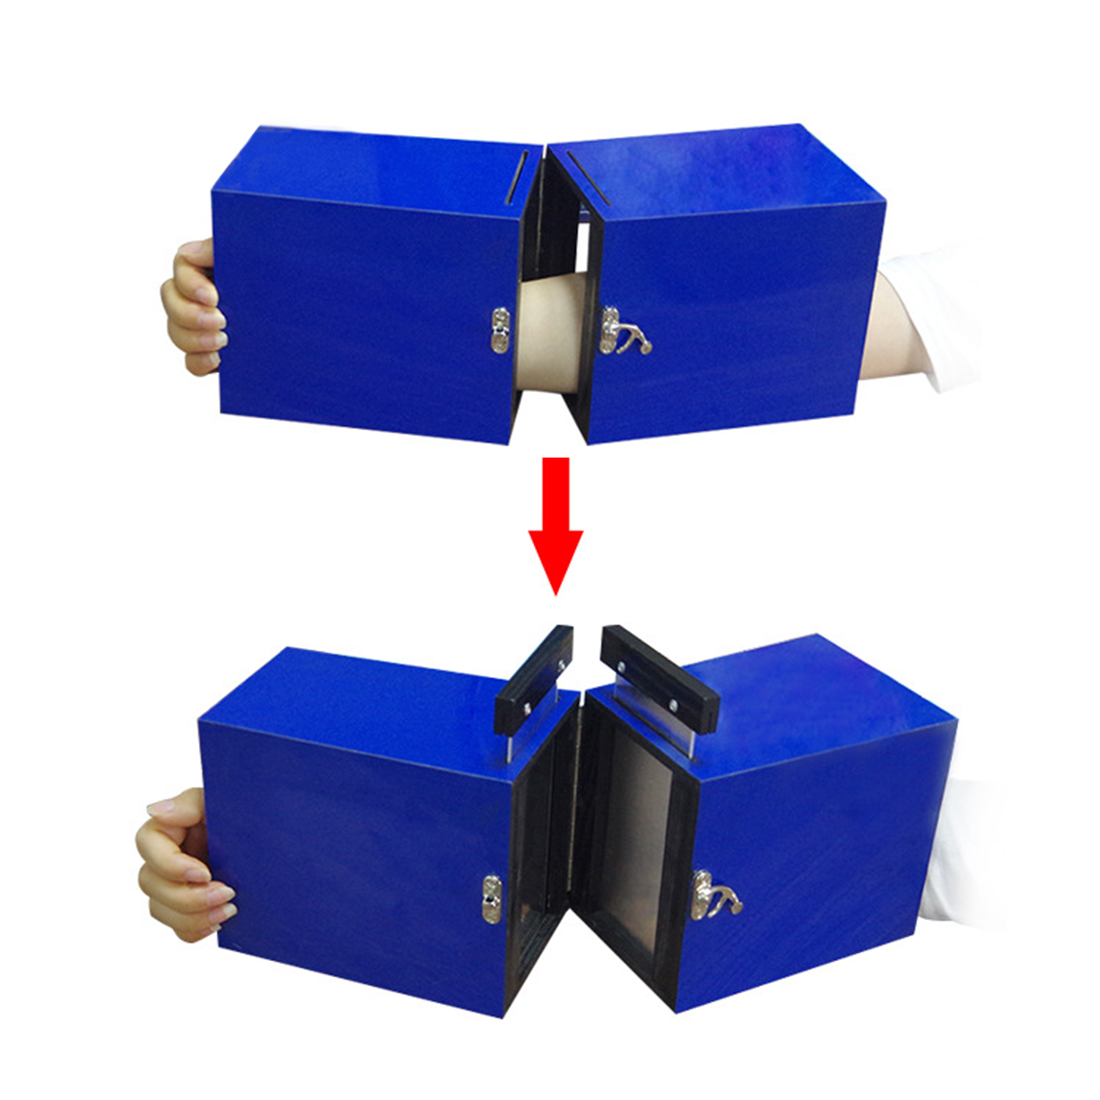 Rowsfire Dis Armed One-Person Portable Illusion Magic Tricks Magician Stage Gimmick Prop